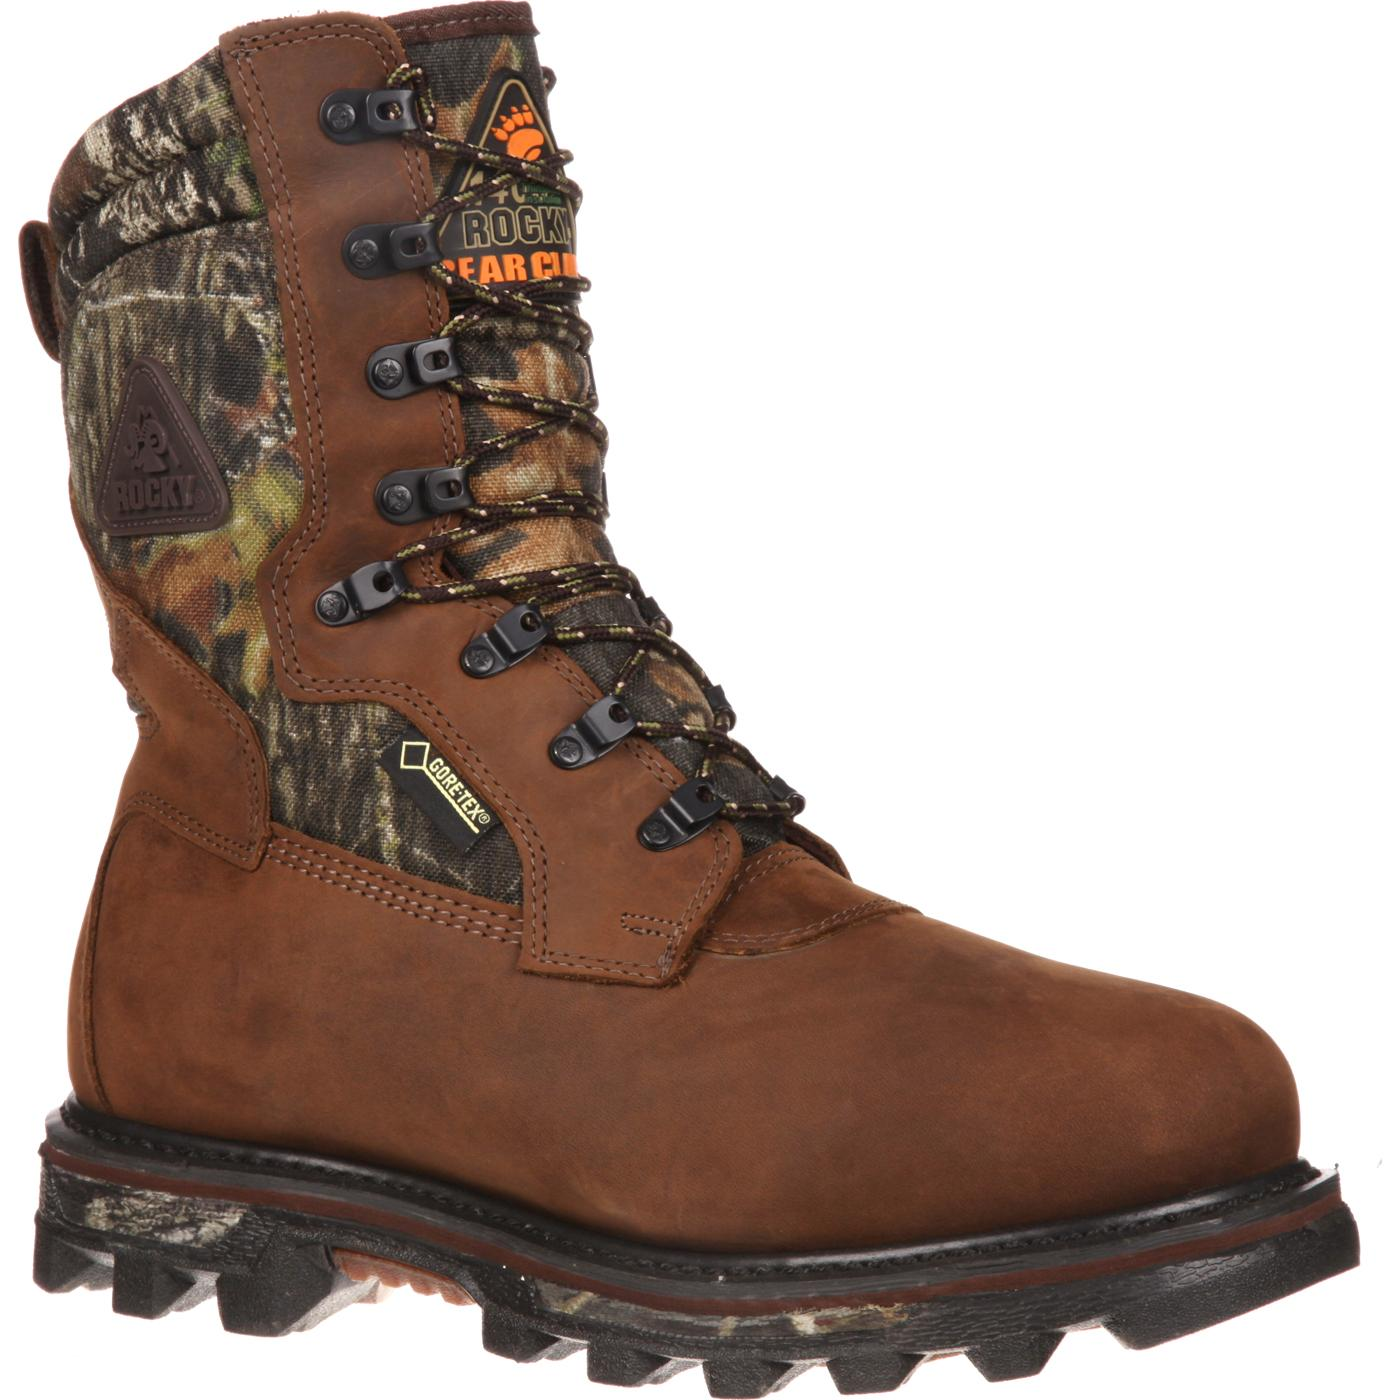 Rocky Arctic - GORE-TEX Waterproof Insulated Camo Boots